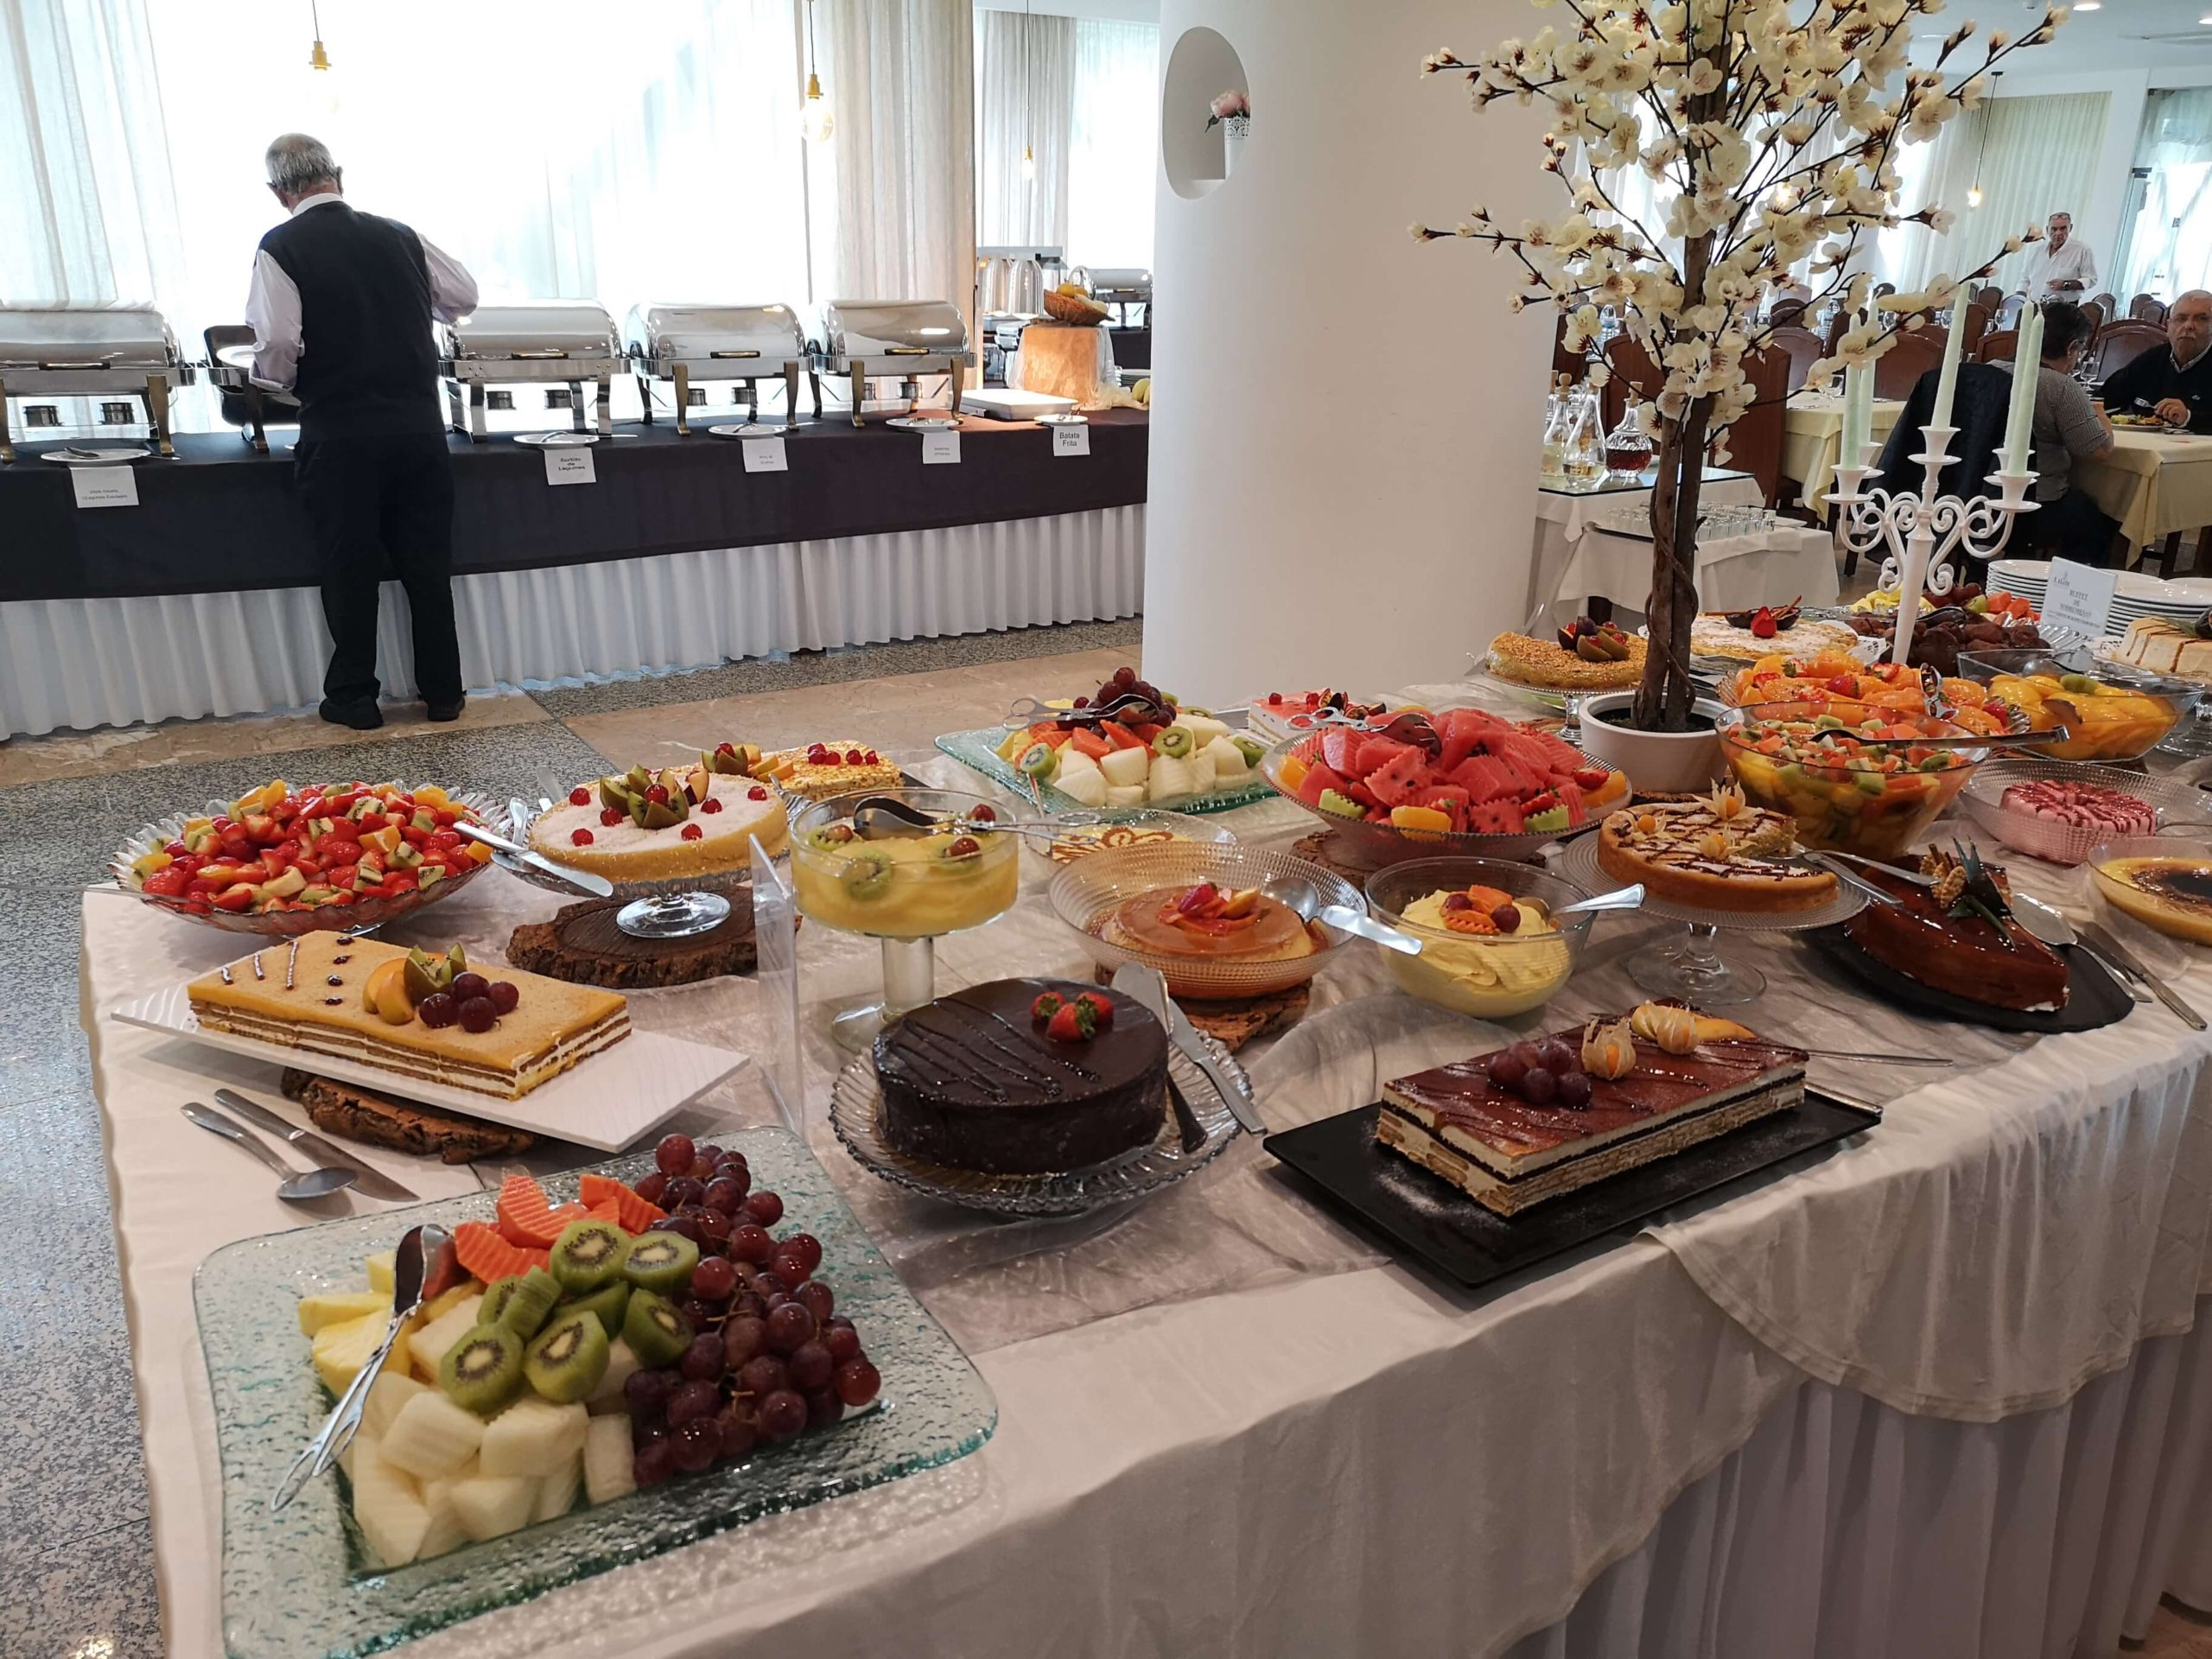 A large table full of various cakes and desserts.